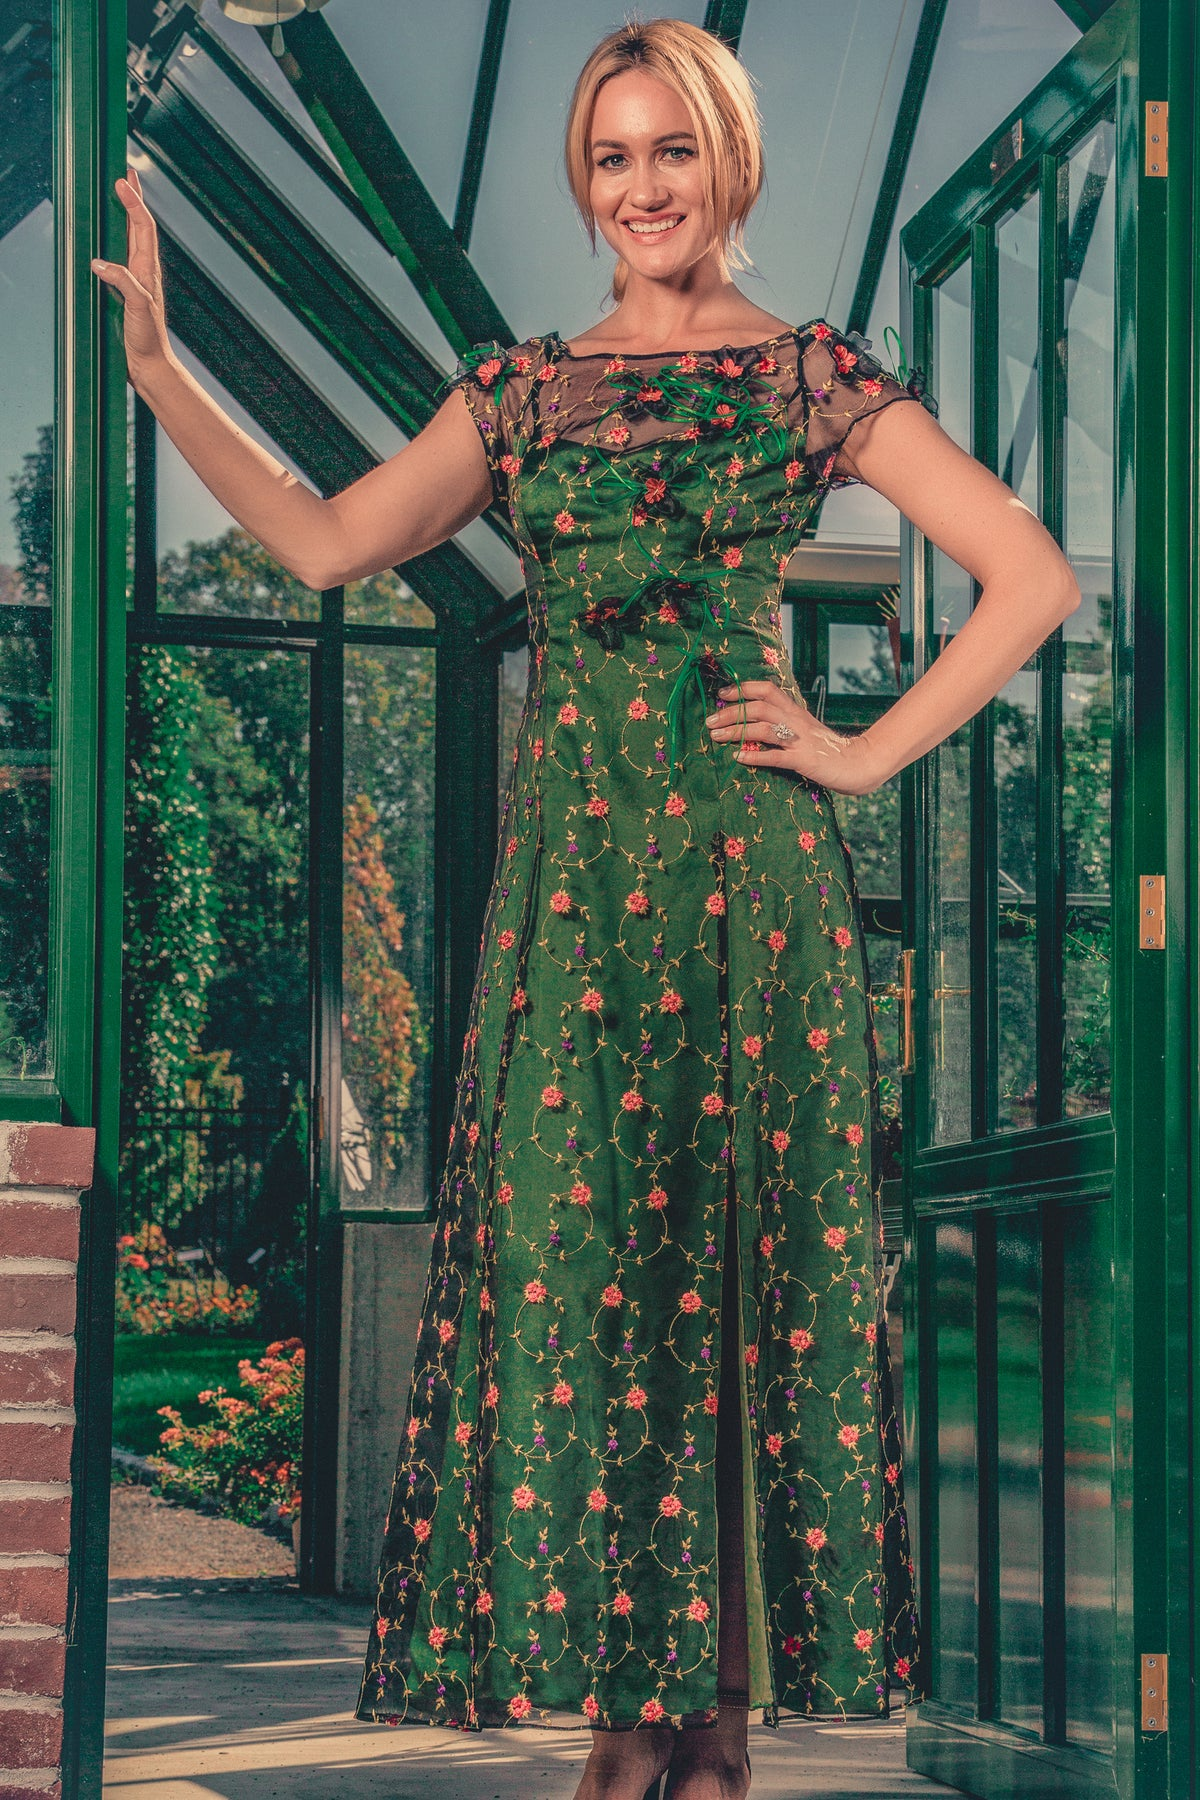 anna nieman designer dress Boston. A long gown from embroidered silk organza, has a flattering svelte silhouette. Hand-made flowers give a delicate and luxurious look.